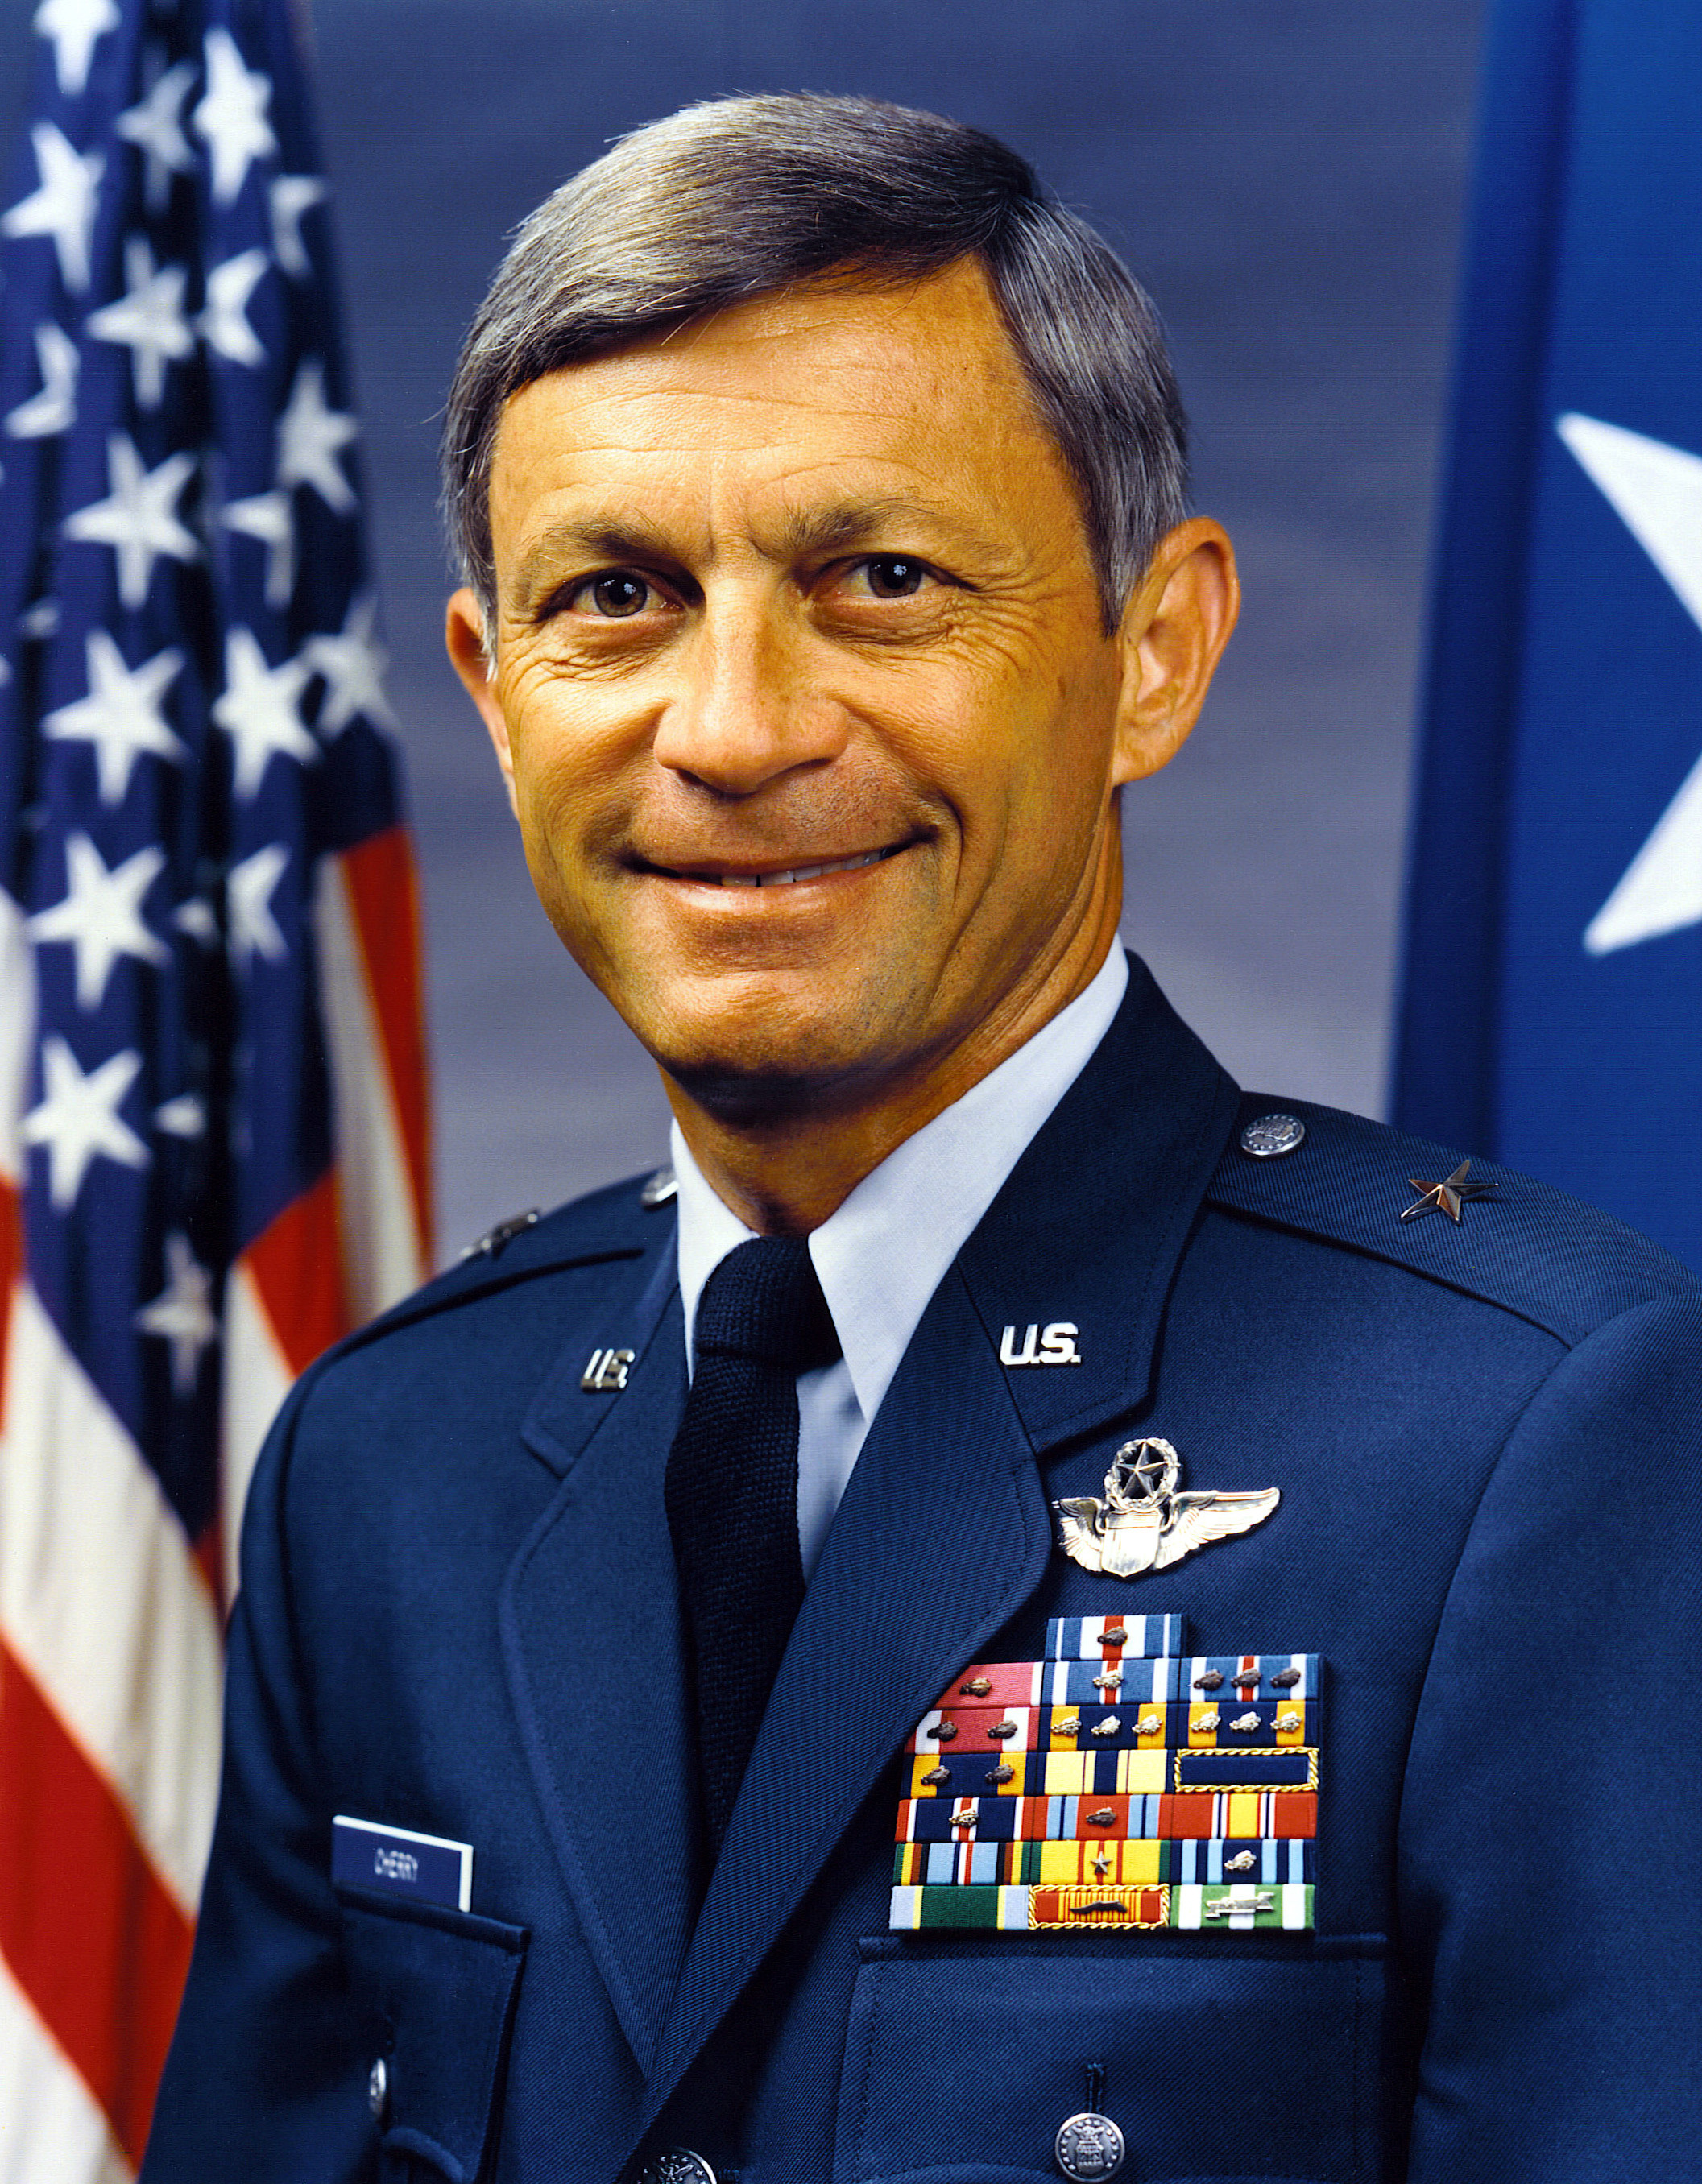 e daniel cherry is commander us air force recruiting service and deputy chief of staff for recruiting service and commissioning programs cherry air force 1